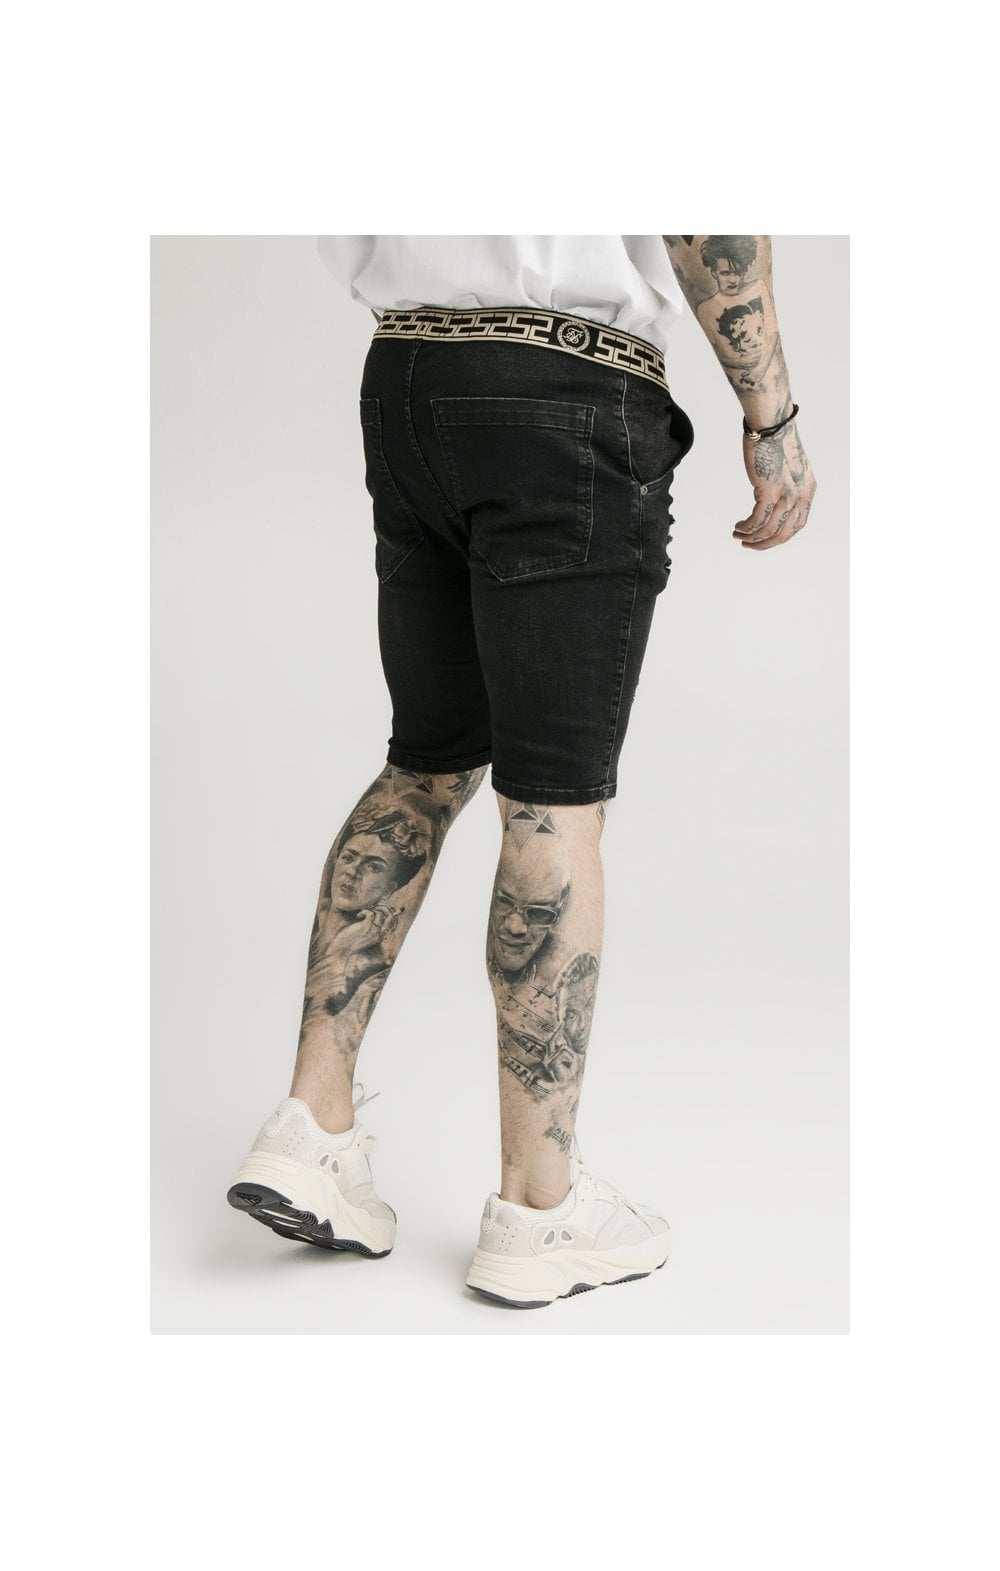 SikSilk Elasticated Waist Distressed Denim Shorts – Black (3)